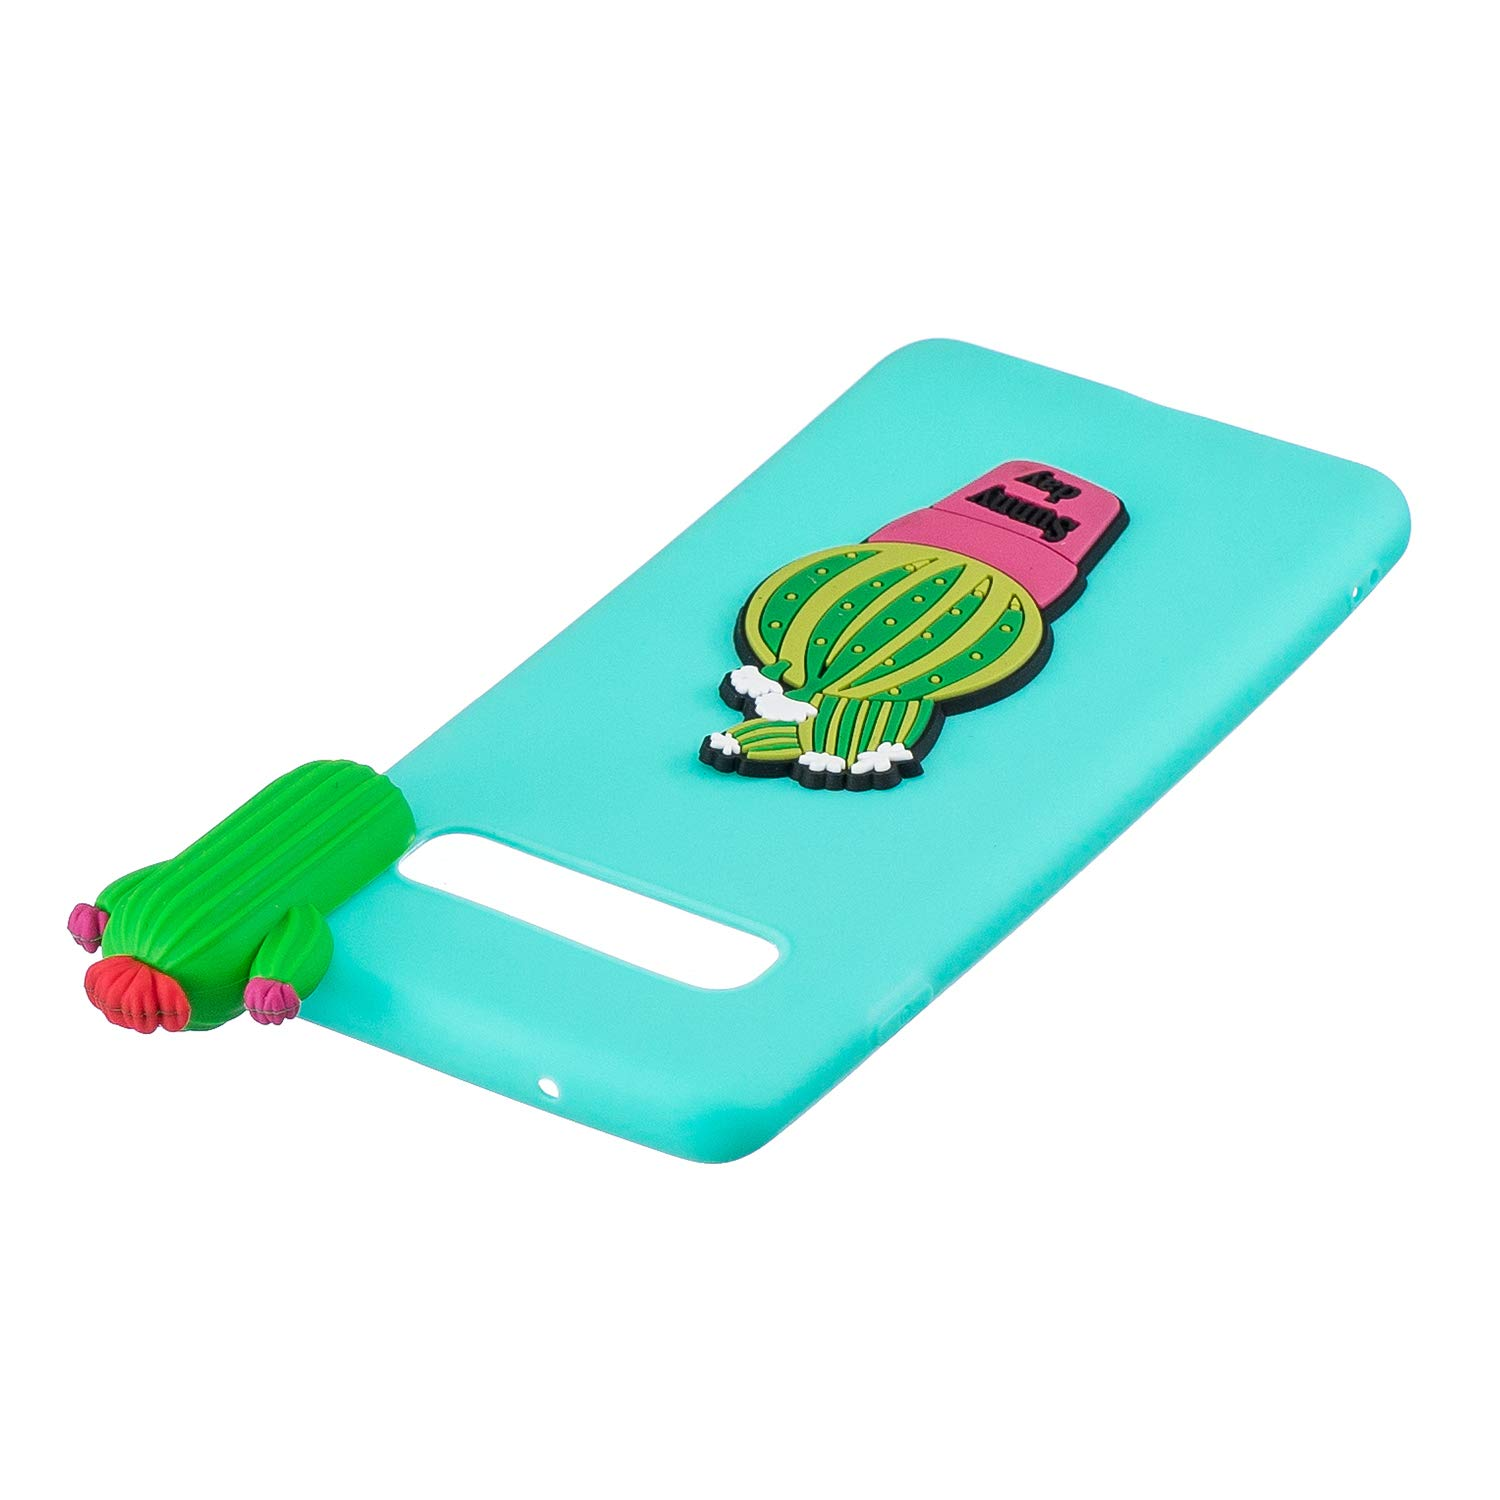 TPU Case for Samsung Galaxy S10,Moiky Funny 3D Cactus Design Ultra Thin Soft Silicone Resistant Back Cover Phone Case Unique Style Protect Case by MOIKY (Image #5)